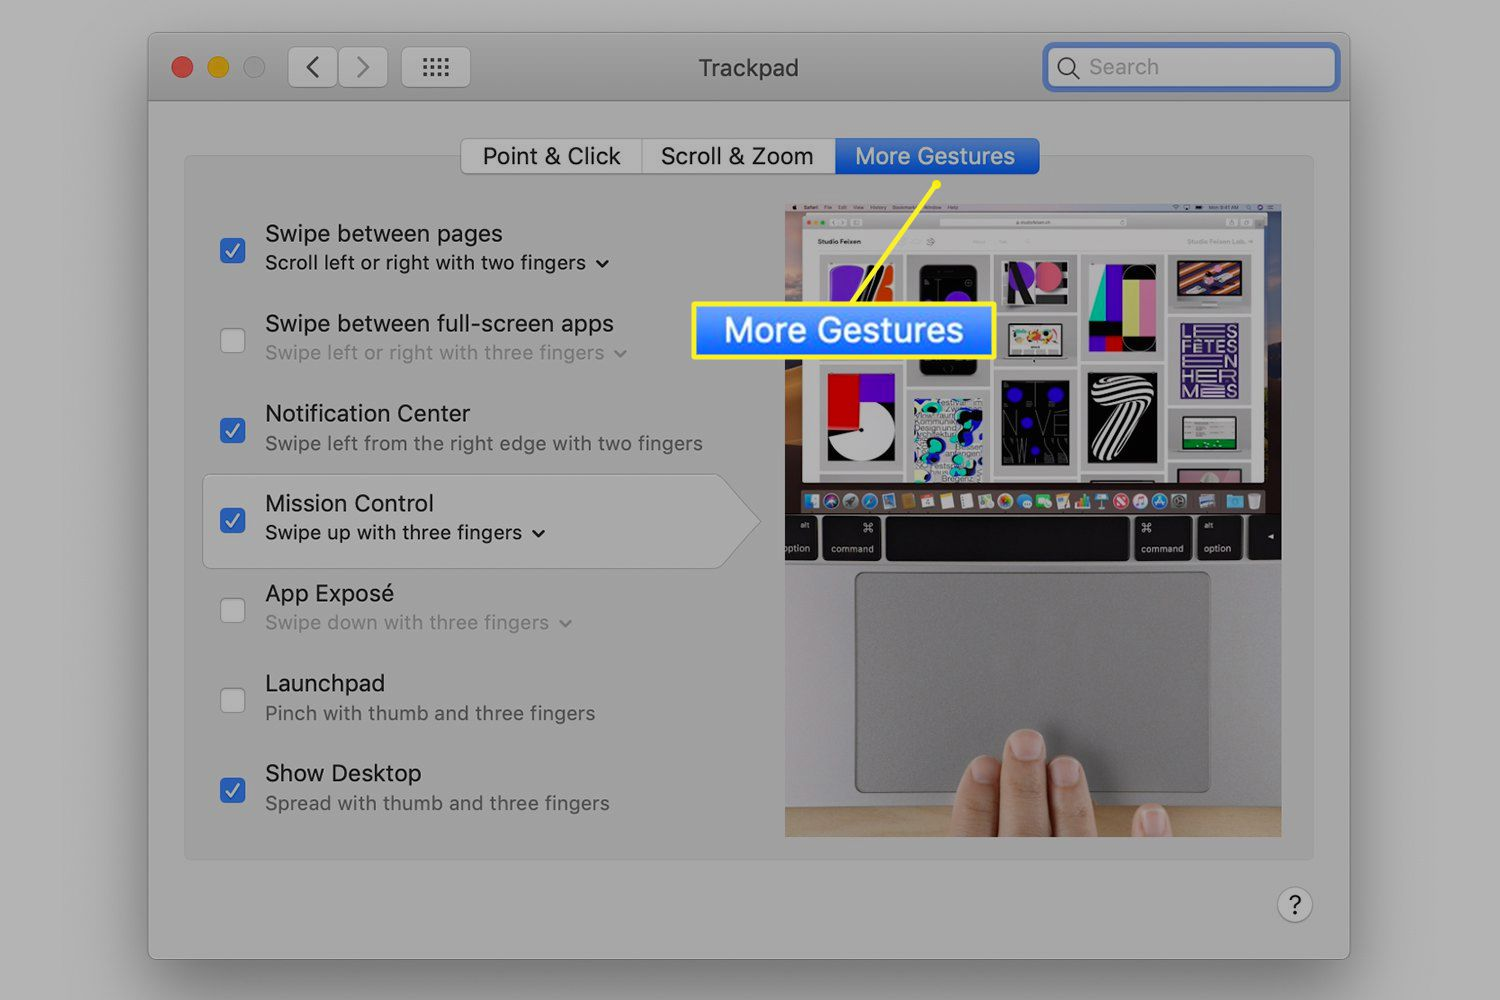 Trackpad preferences with More Gestures tab selected